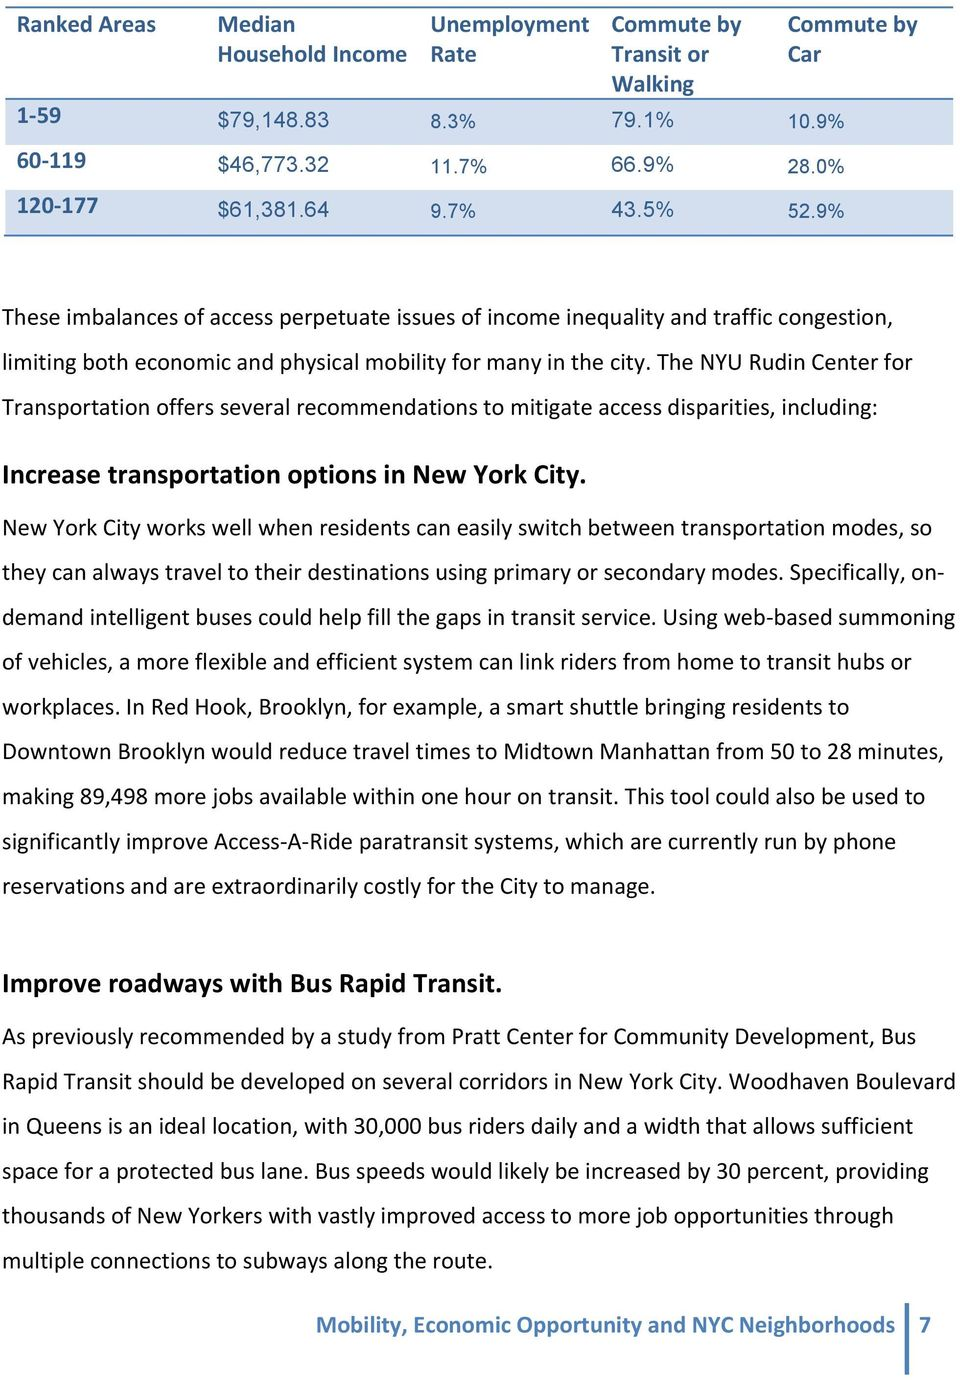 The NYU Rudin Center for Transportation offers several recommendations to mitigate access disparities, including: Increase transportation options in New York City.